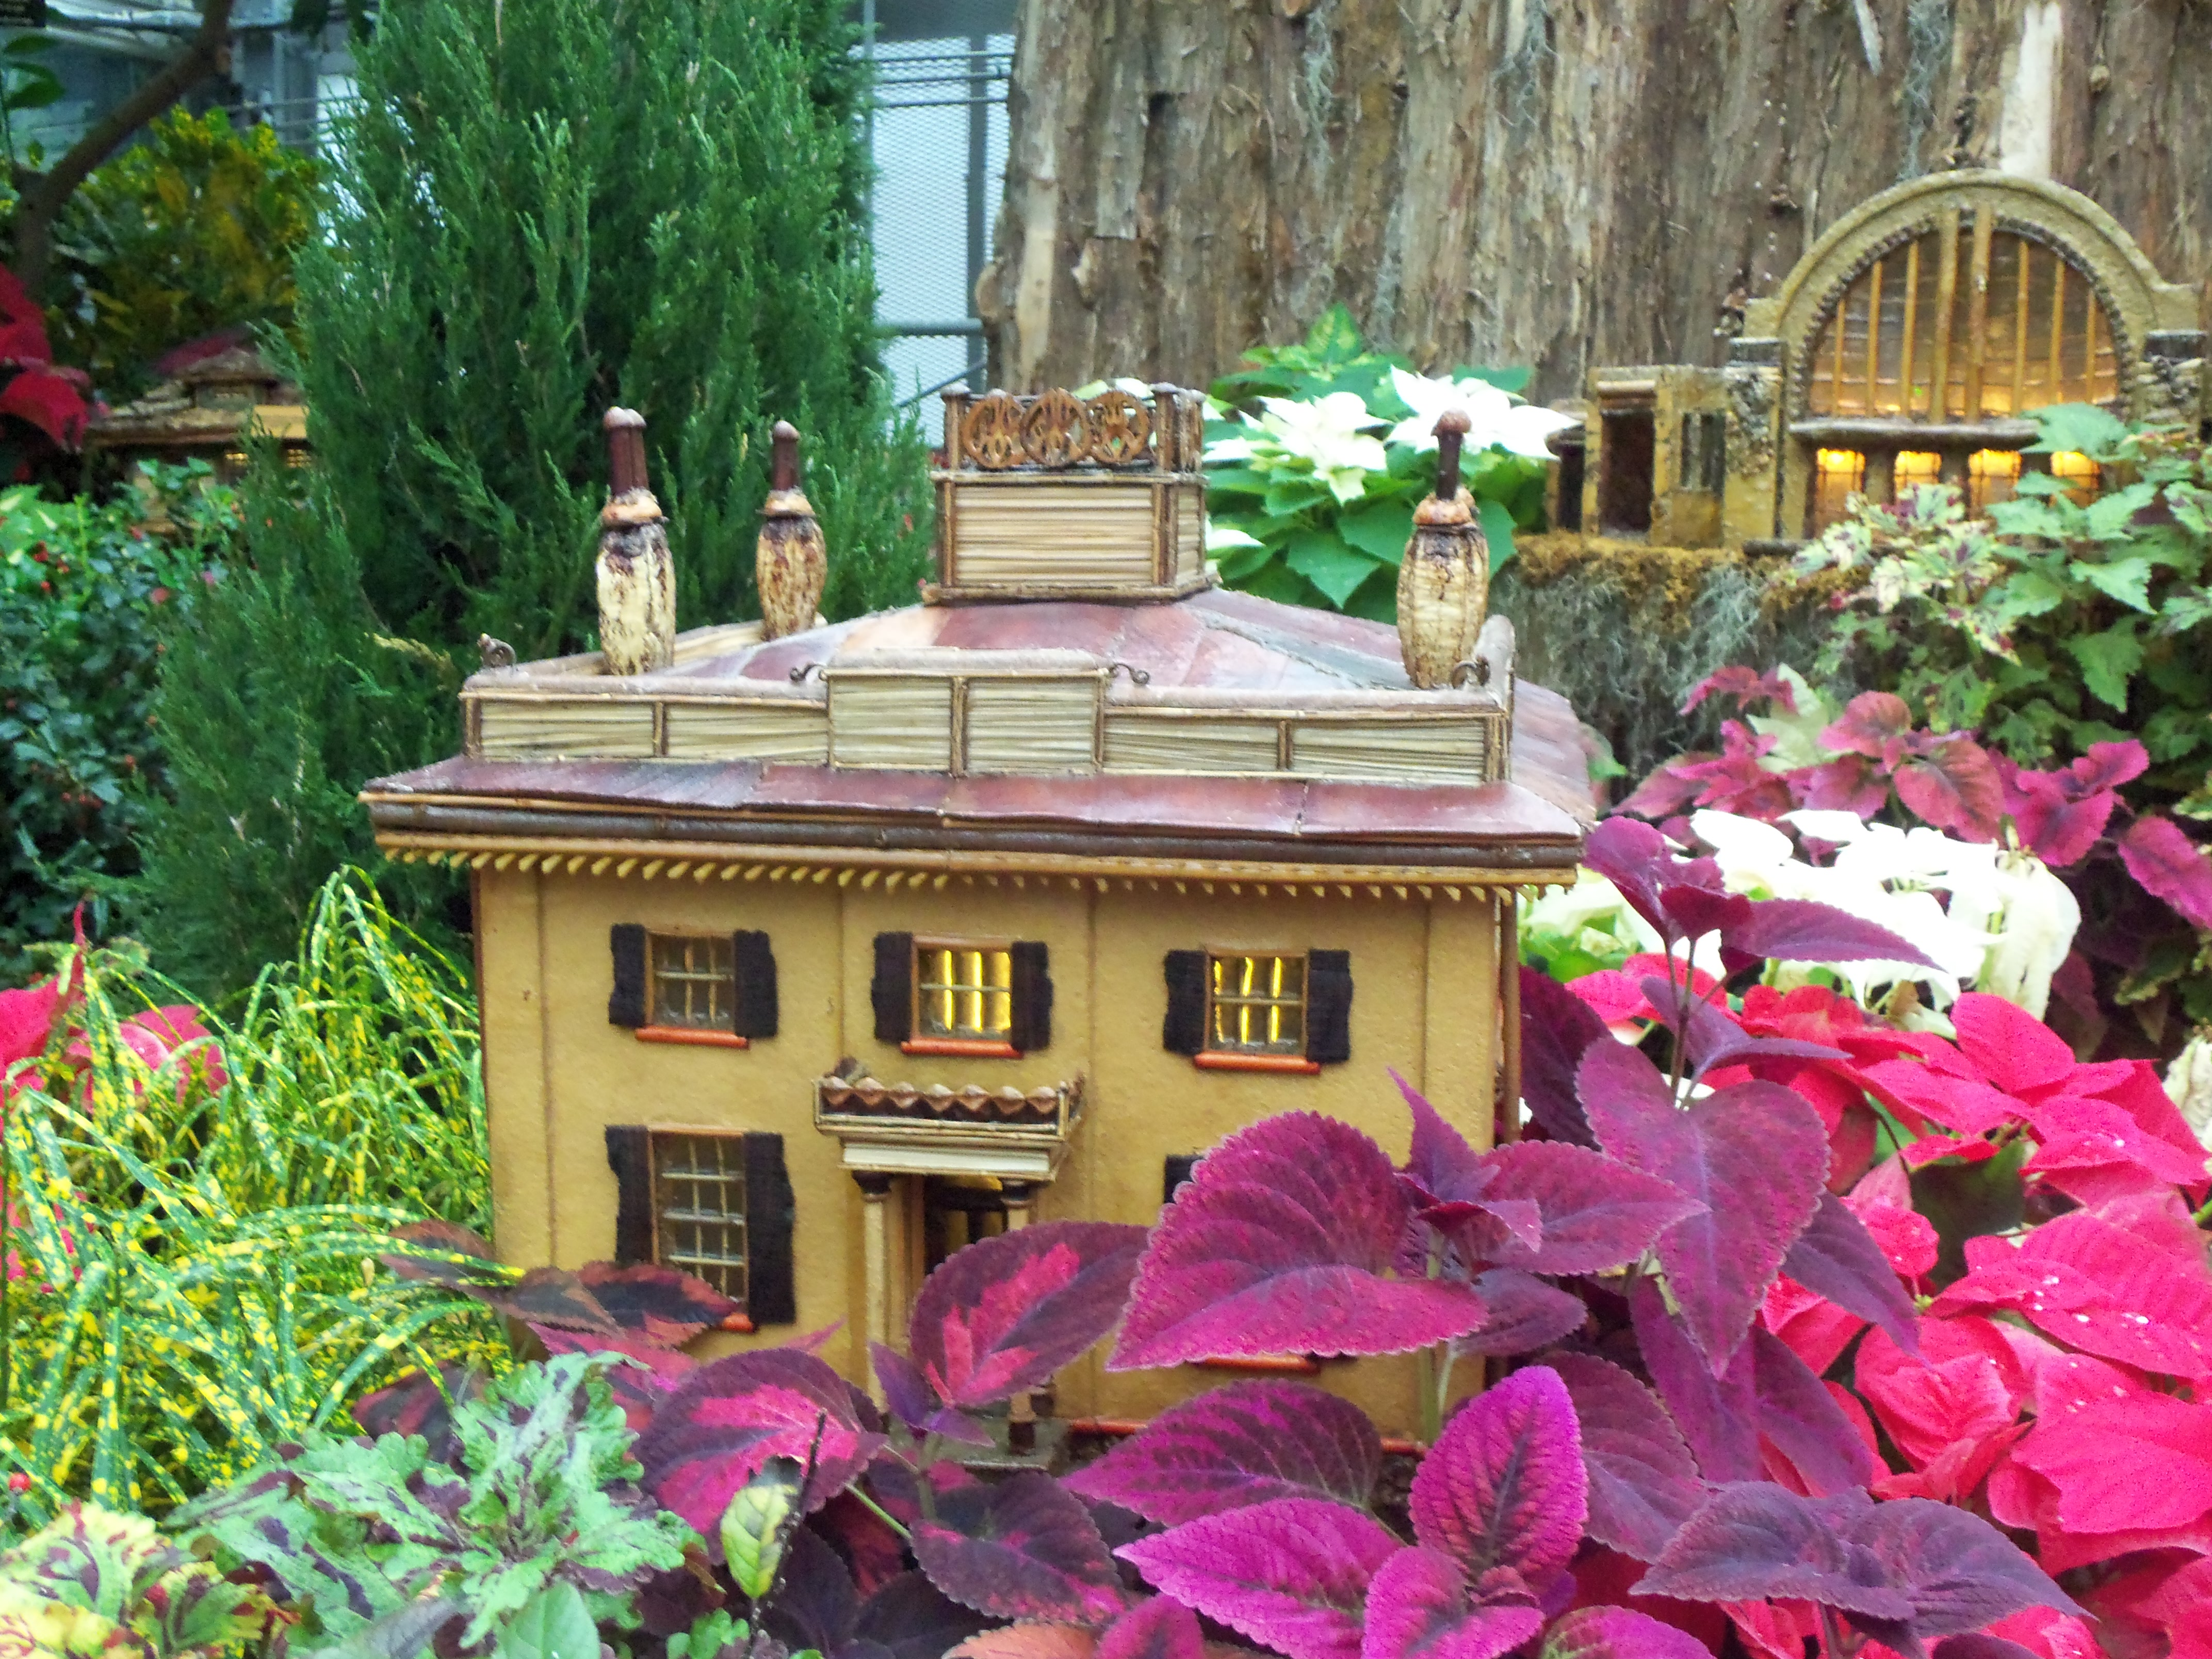 Miniature Taft house at the Krohn Conservatory.